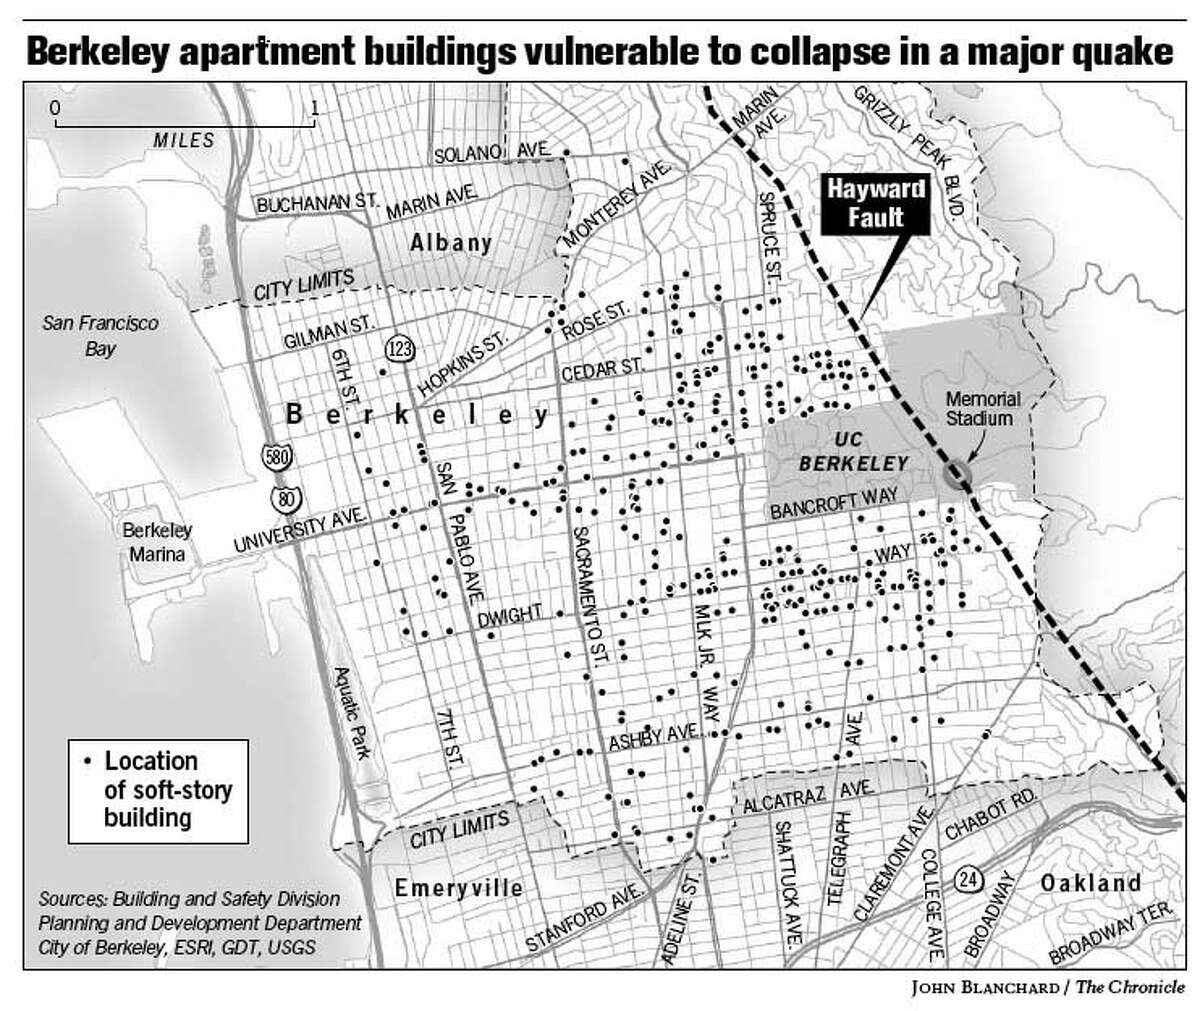 Berkeley Apartment Buildings Vulnerable to Collapse in a Major Quake. Chronicle graphic by John Blanchard